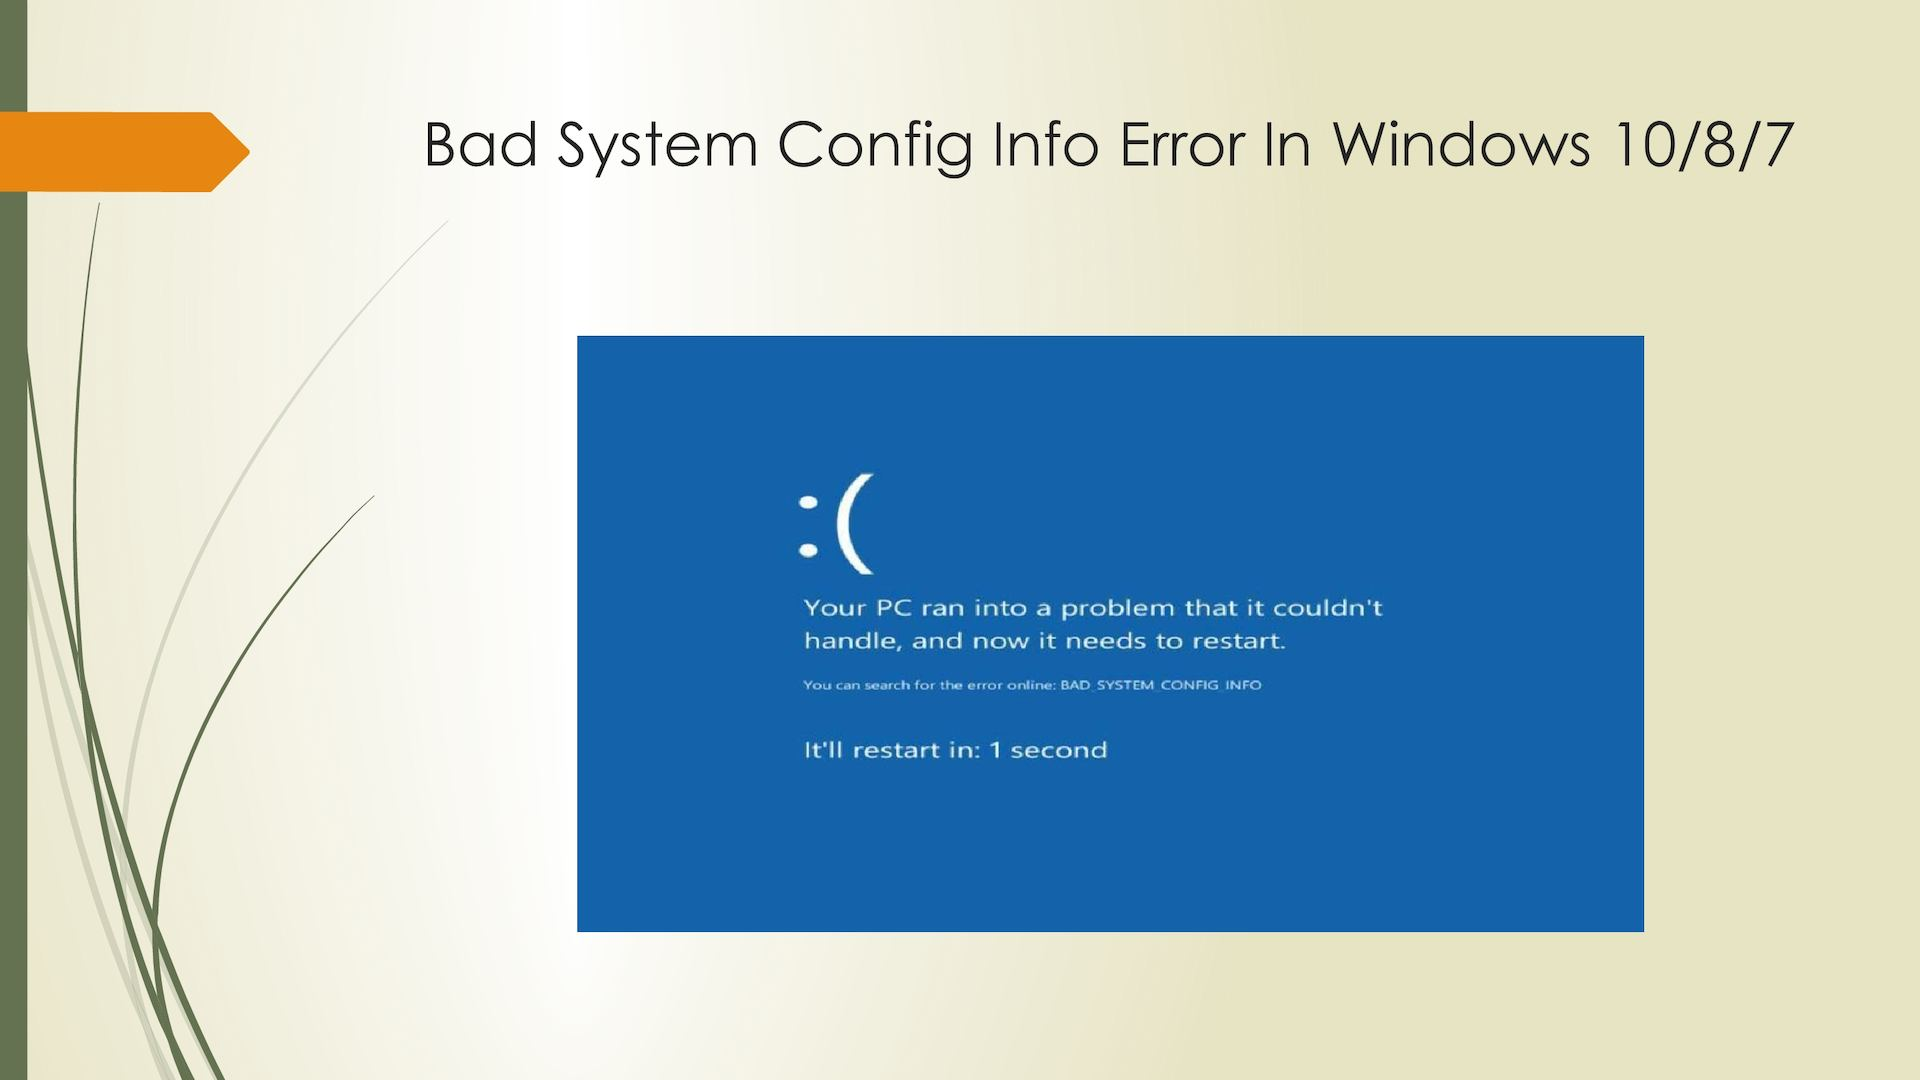 stop code windows 10 bad system config info